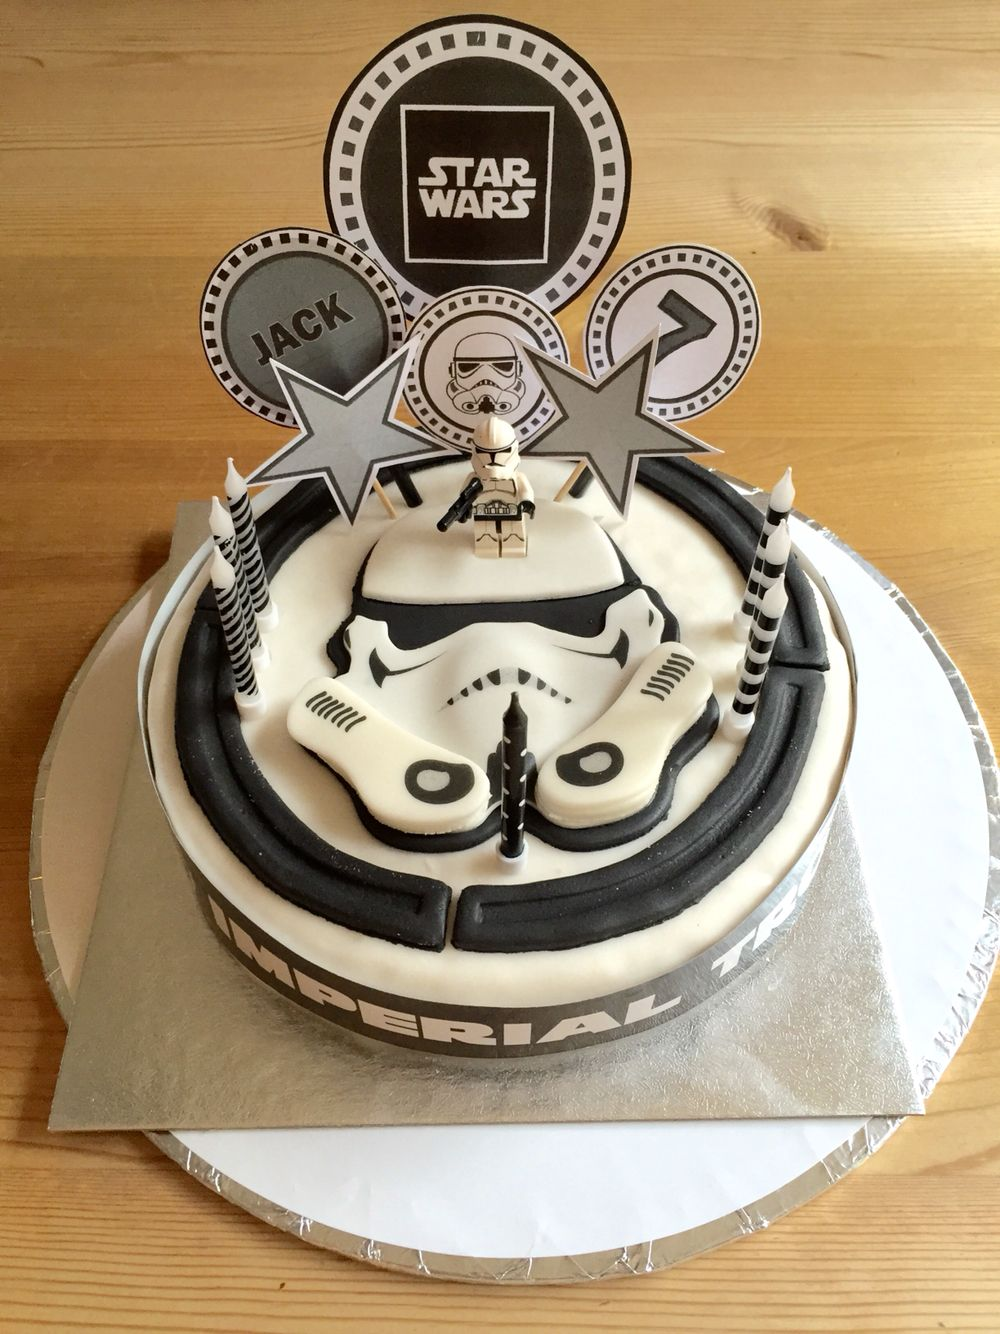 Strange Star Wars Cake From Tesco For 10 Customised By Making Cake Funny Birthday Cards Online Bapapcheapnameinfo